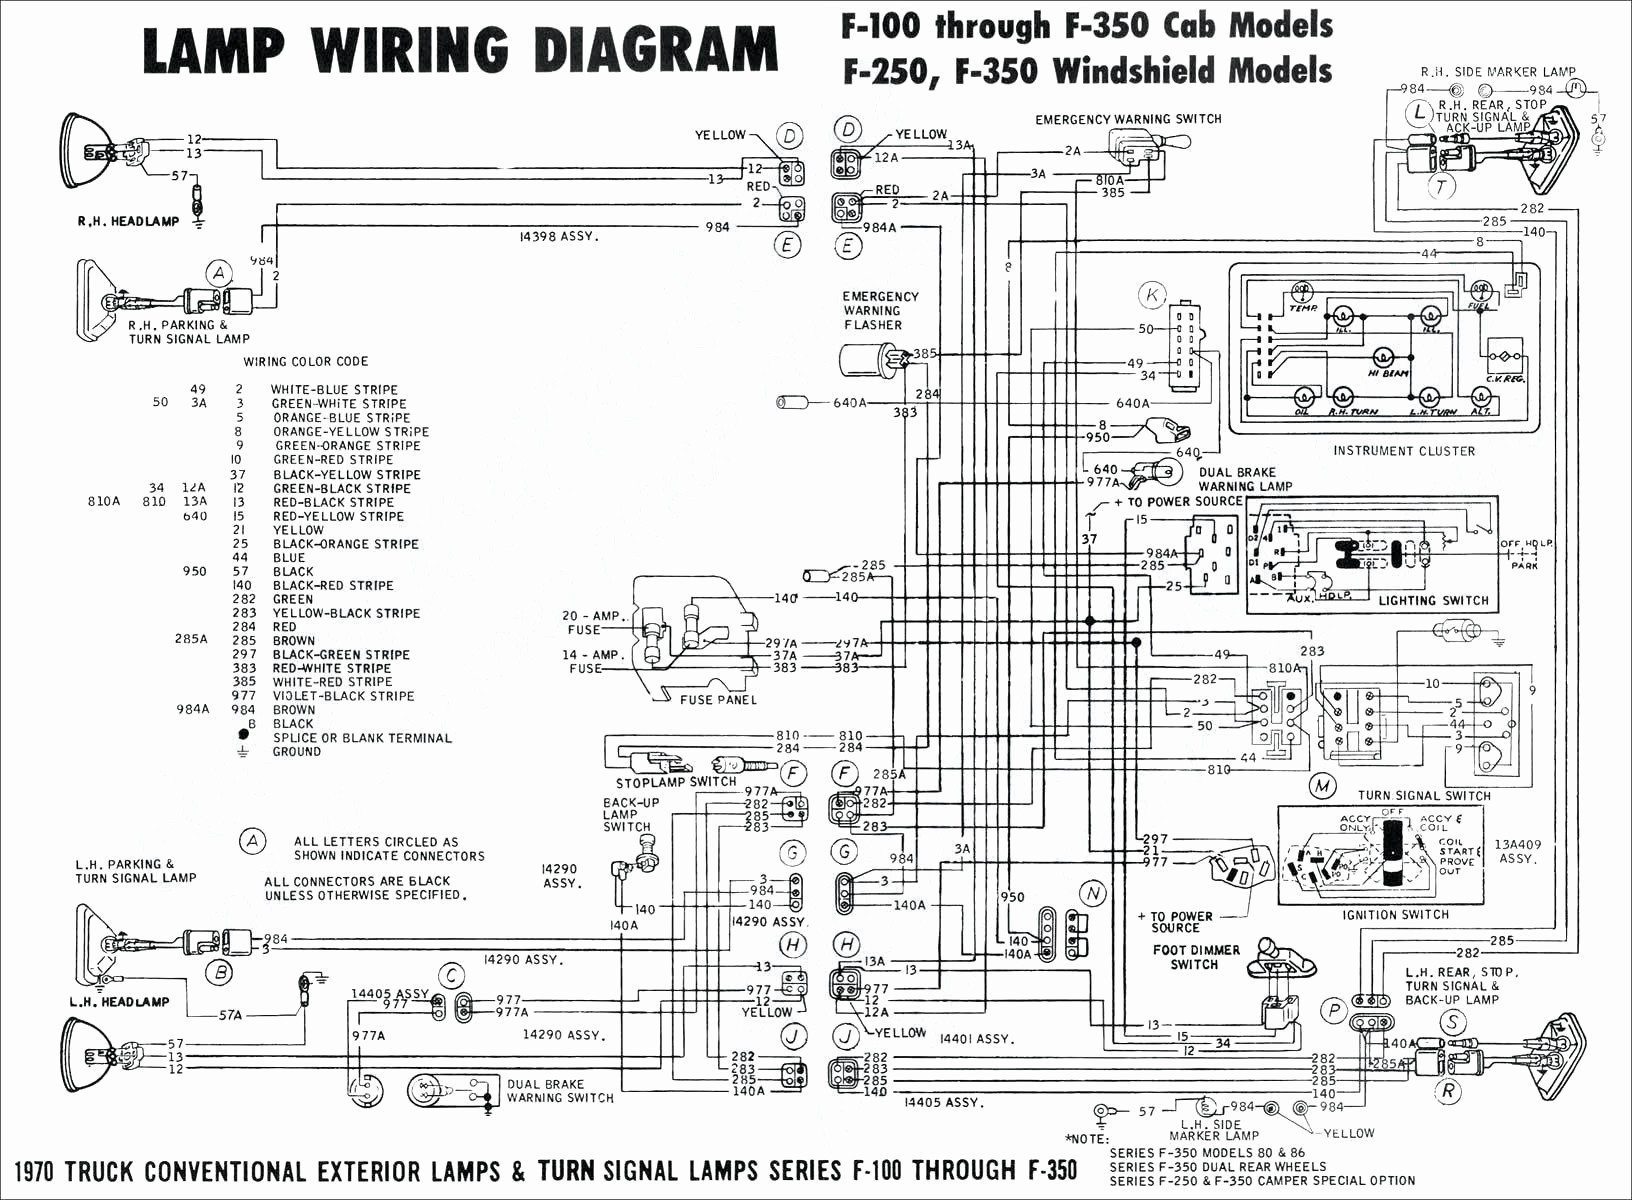 chevy silverado tail light wiring diagram Download-Brake Light Wiring Diagram Chevy Manual New Tail Light Wiring Diagram 1995 Chevy Truck Fresh 1984 Ford Truck 14-l